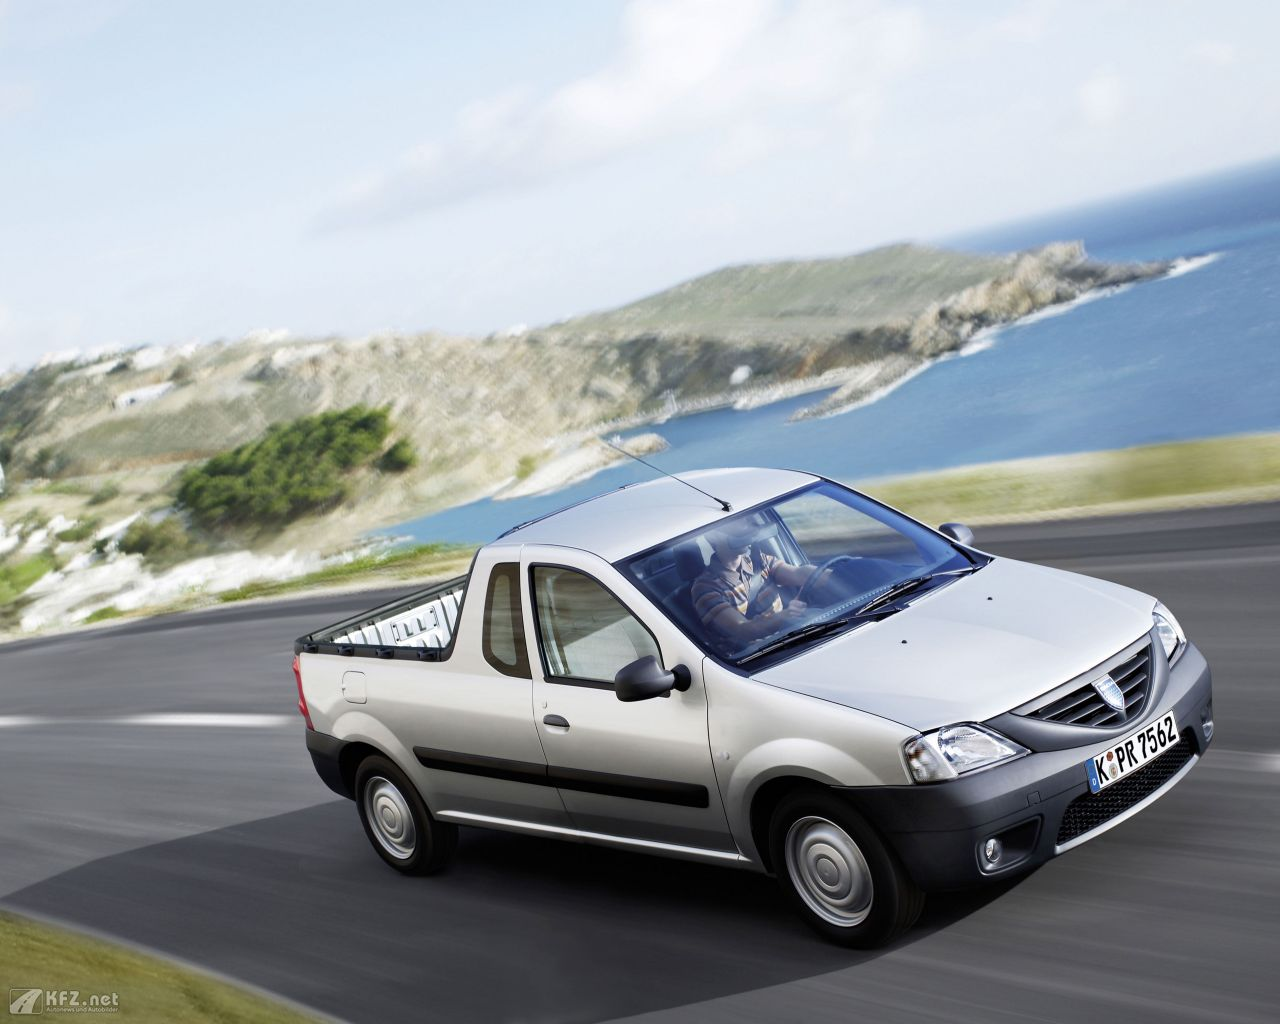 dacia-pick-up-1280x1024-171